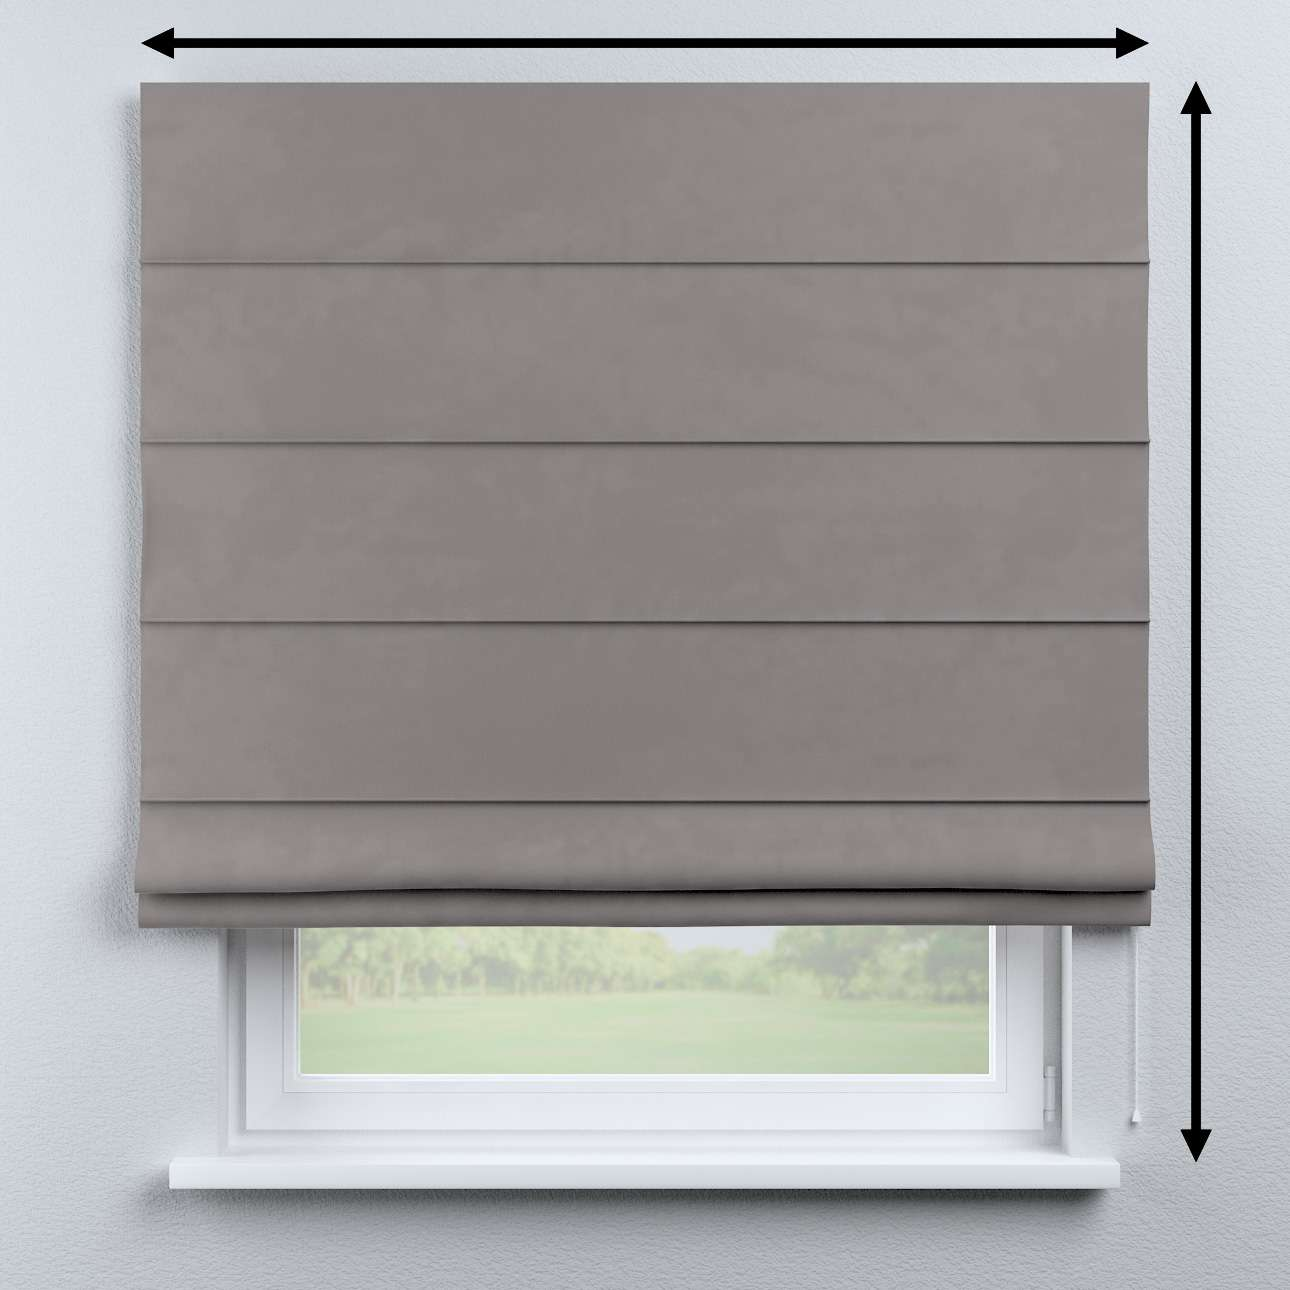 Capri roman blind in collection Velvet, fabric: 704-11